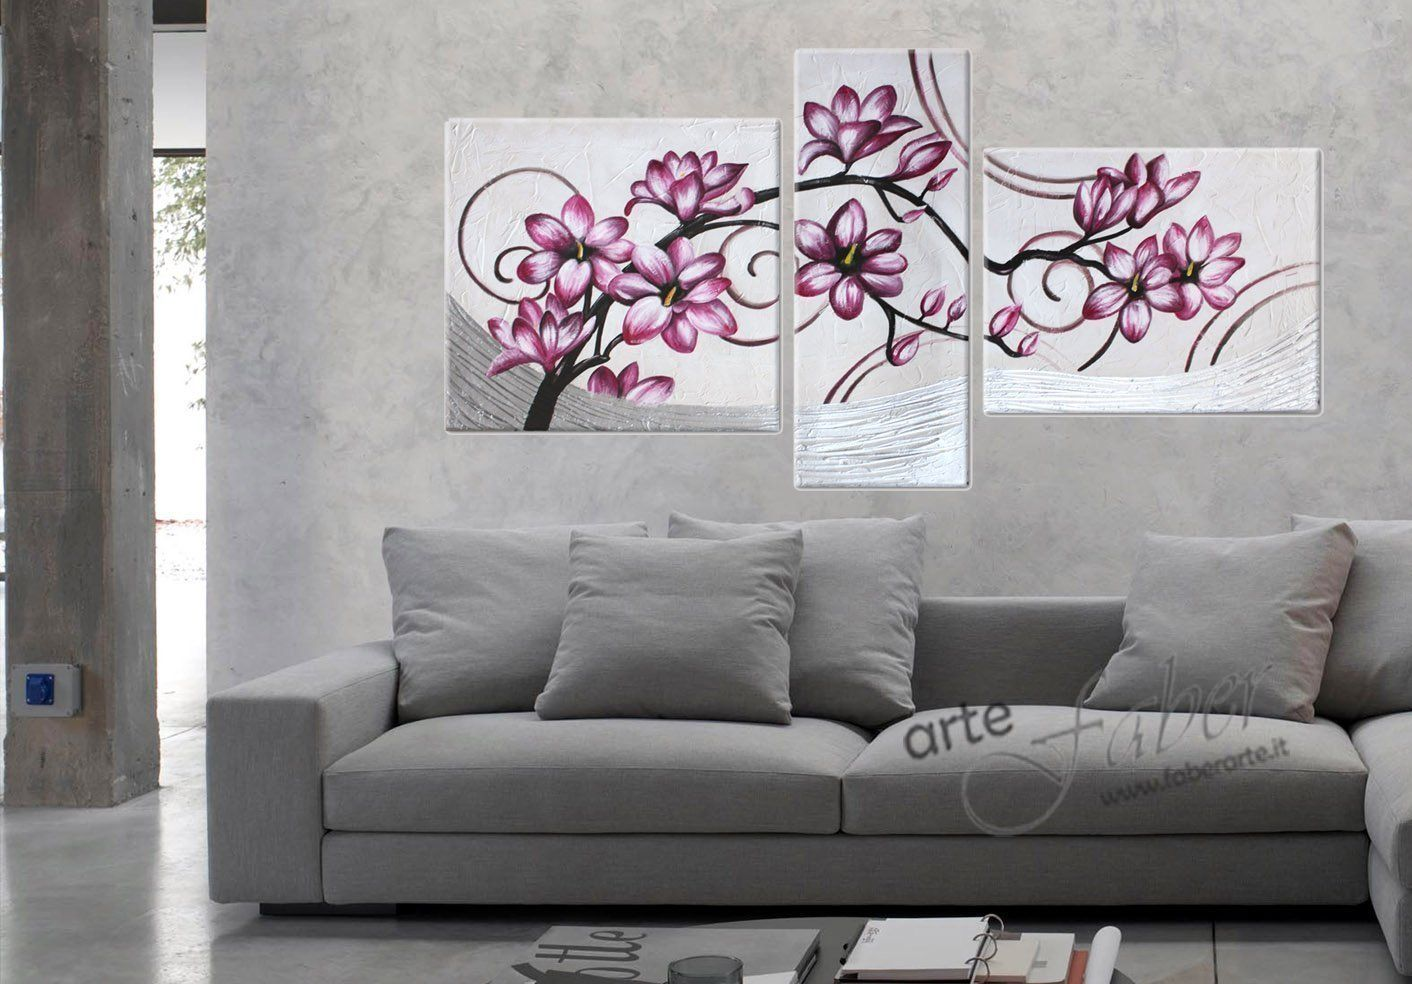 https://www.faberarte.it/sites/faberarte.it/files/products/81/quadri-moderni-fiori-dipinti-orchidee.jpg